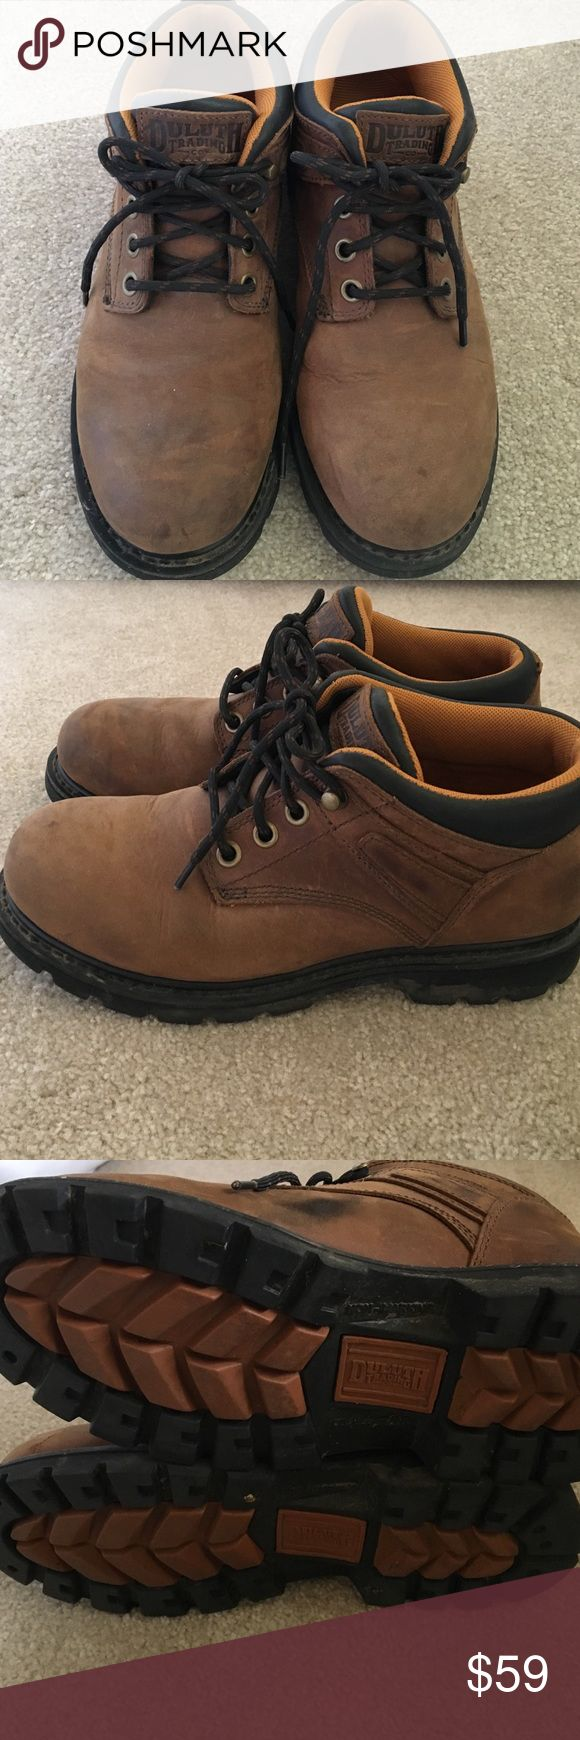 DULUTH TRADING CO. Brown leather work BOOT Great brand DULUTH TRADING leather boot worn only a couple of times. Some normal scuffing but really good condition ‼️ No Trades duluth trading co Shoes Boots